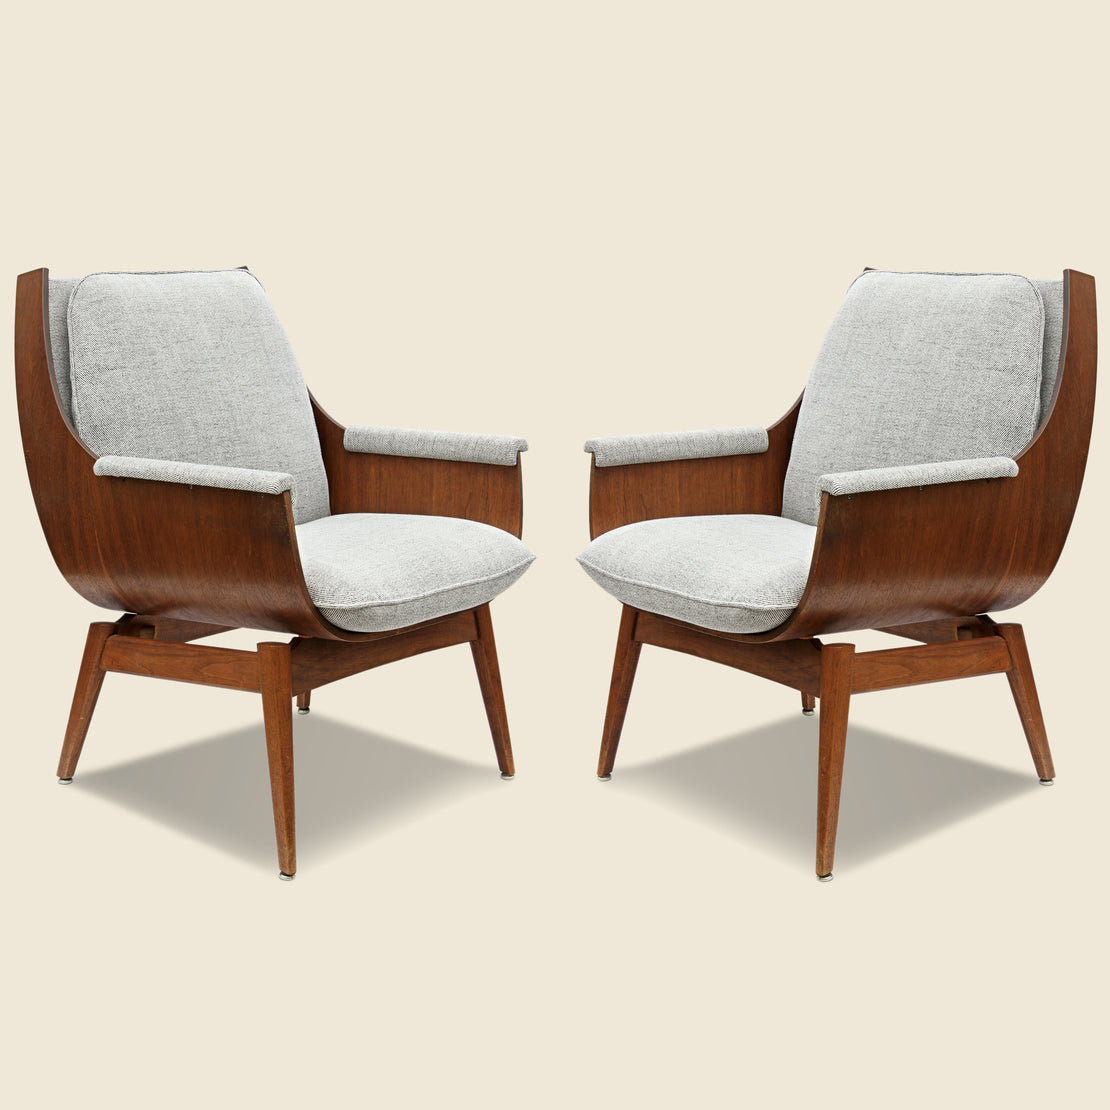 Vintage Mid-Century Plywood Chairs